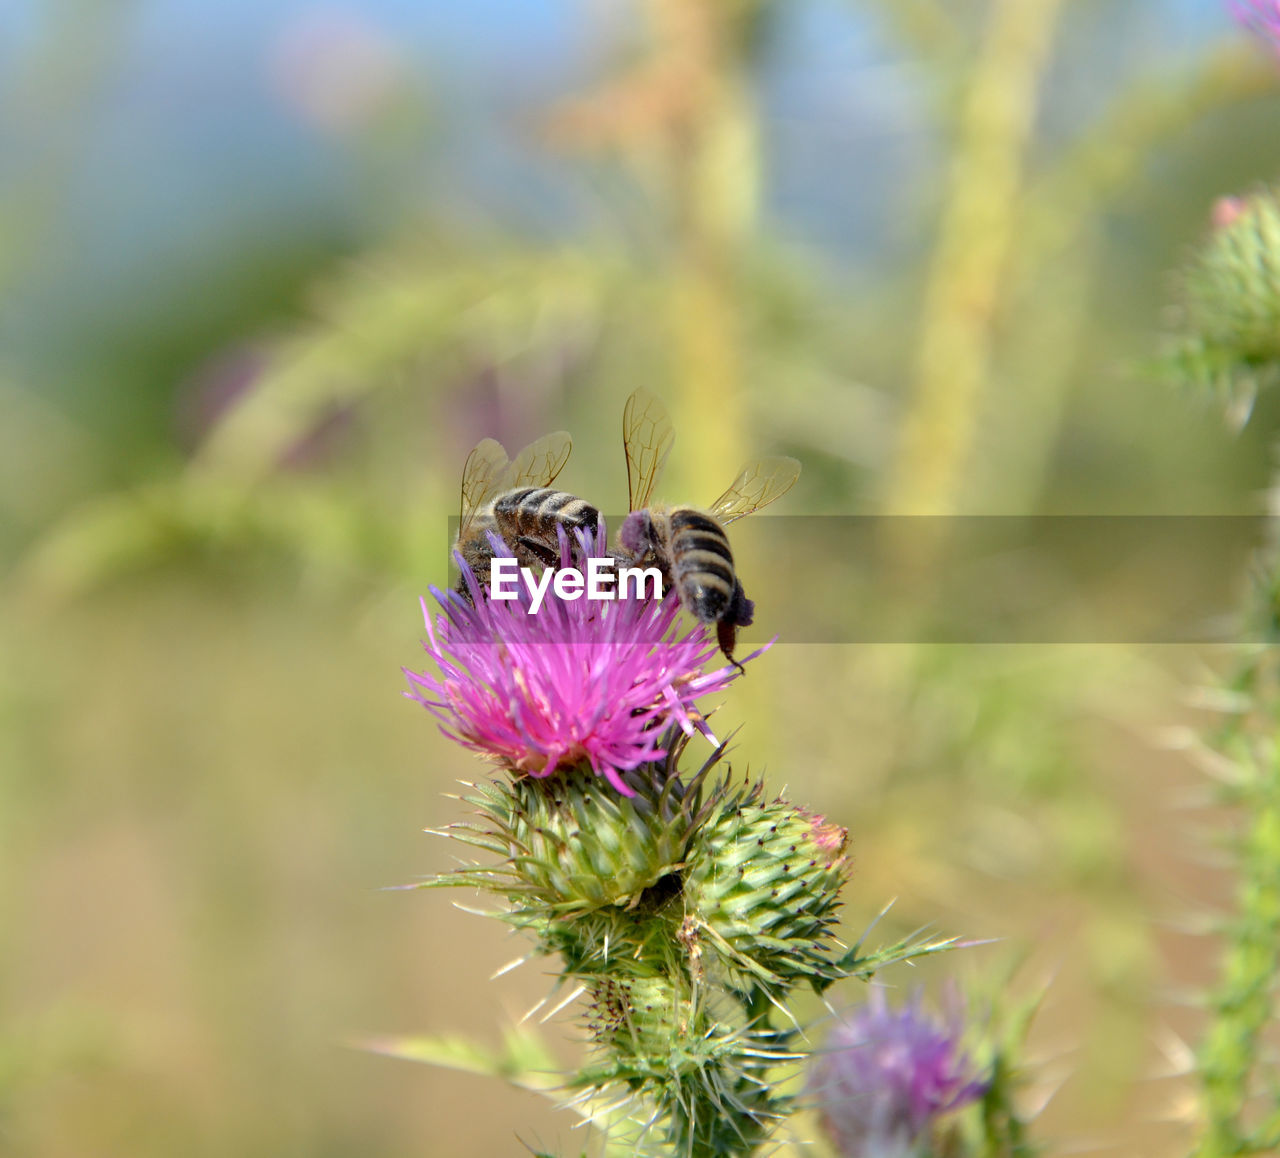 flowering plant, flower, animal themes, insect, animal, animals in the wild, animal wildlife, plant, invertebrate, fragility, beauty in nature, vulnerability, one animal, bee, growth, freshness, flower head, pollination, petal, close-up, purple, no people